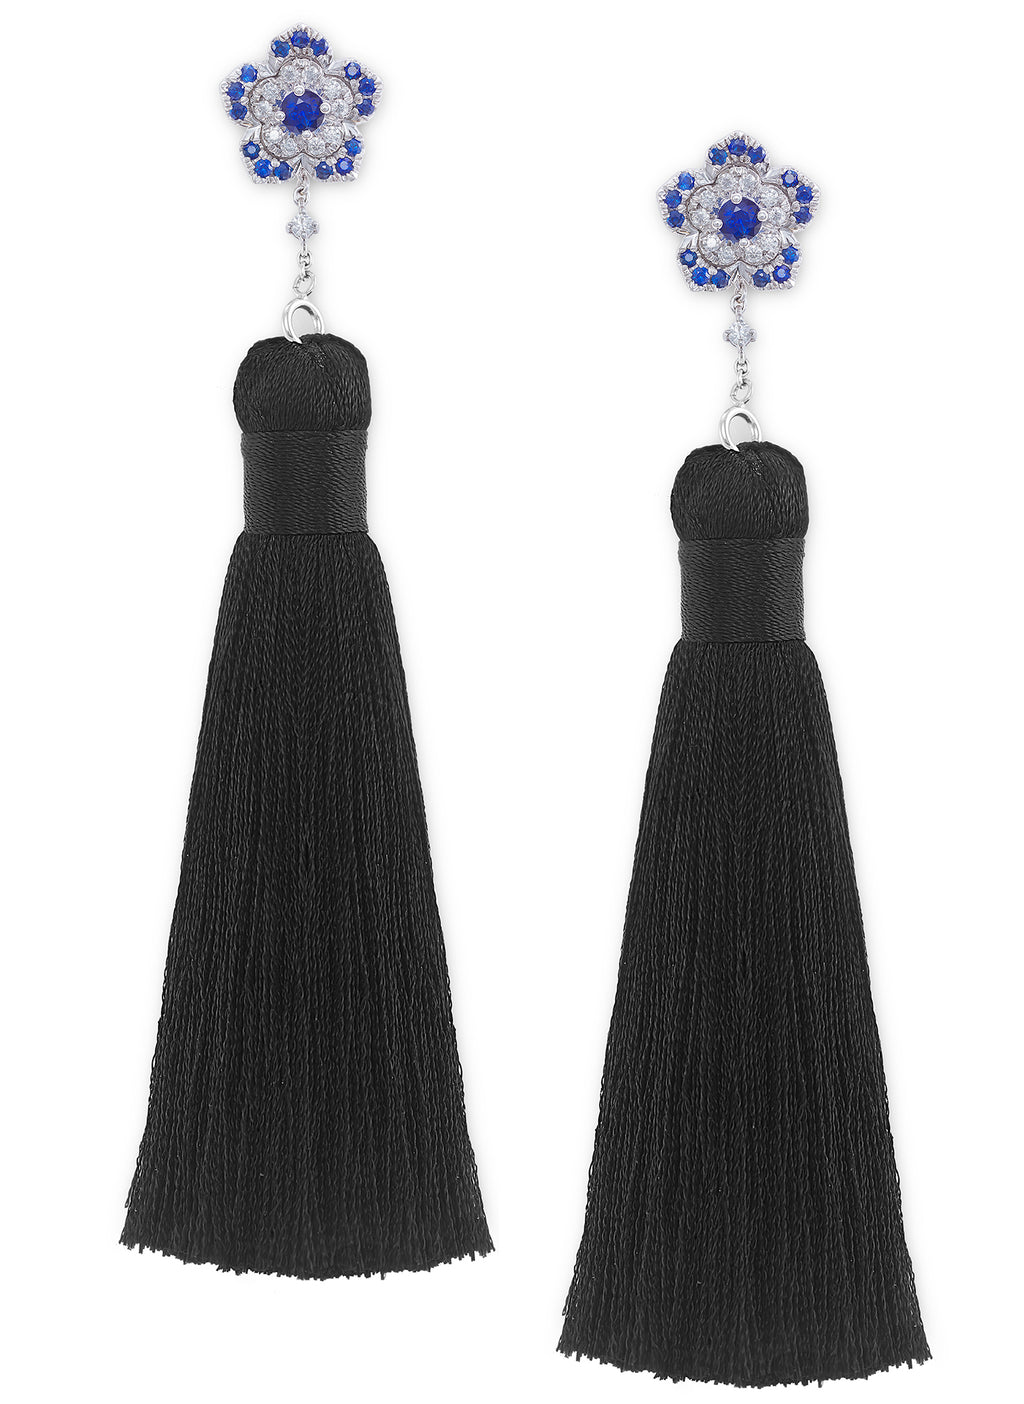 3-in-1 Blue Sapphire & Diamond Tassel Dangle Earrings in 18K White Gold - HN JEWELRY